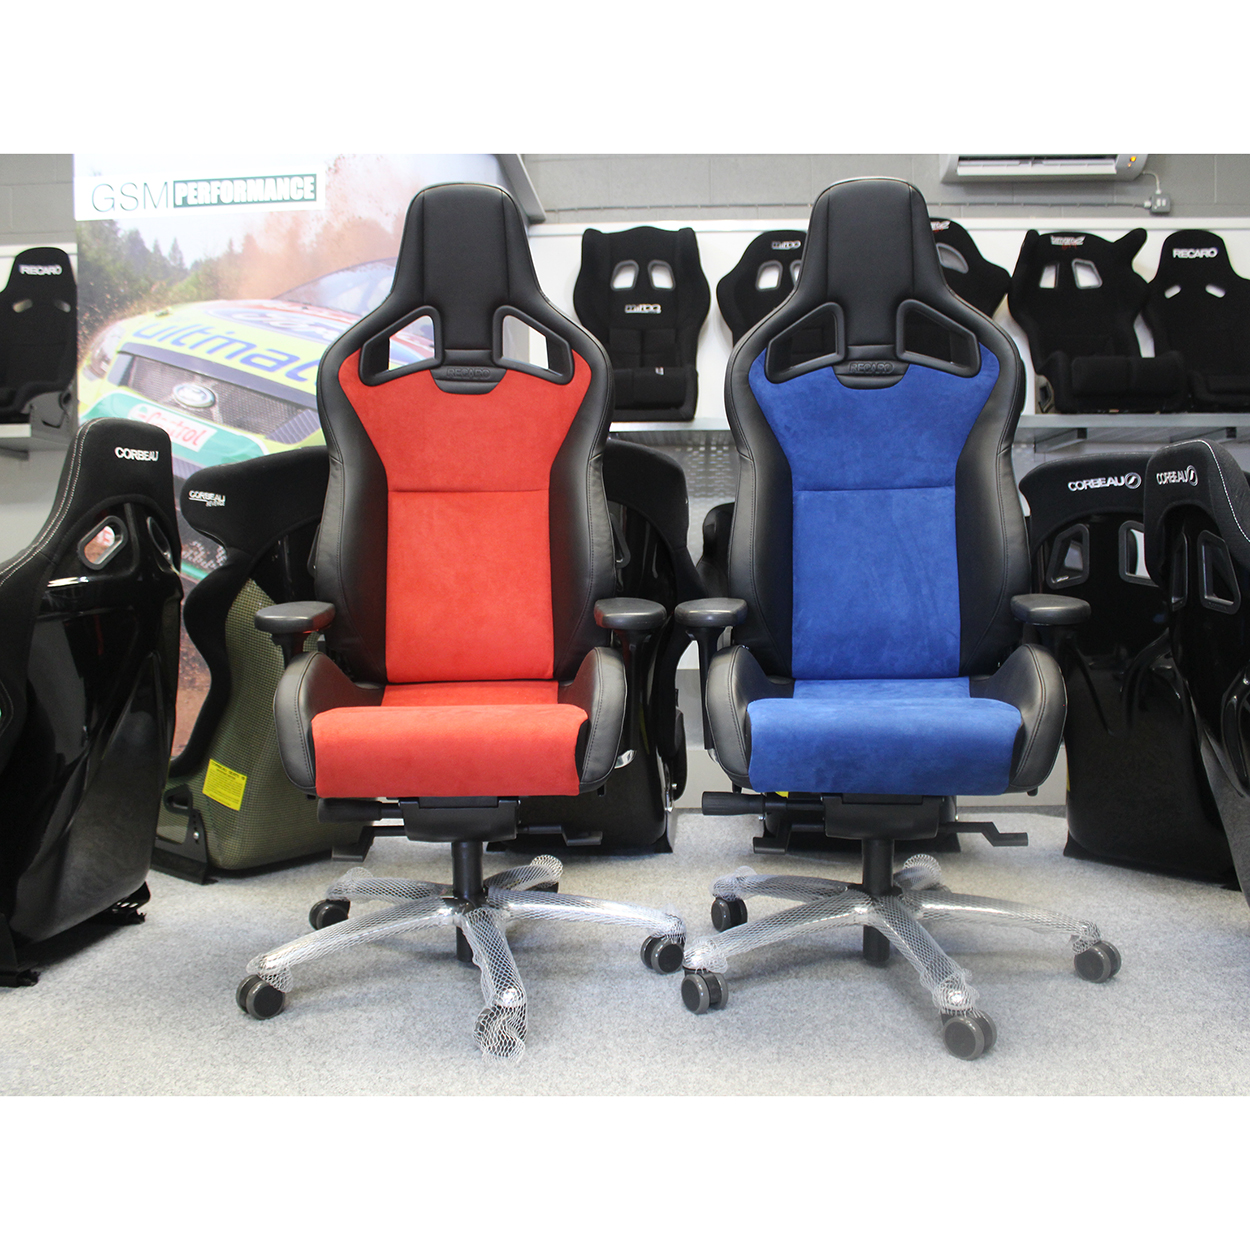 recaro seats - sportster cs office sport seat - gsm sport seats